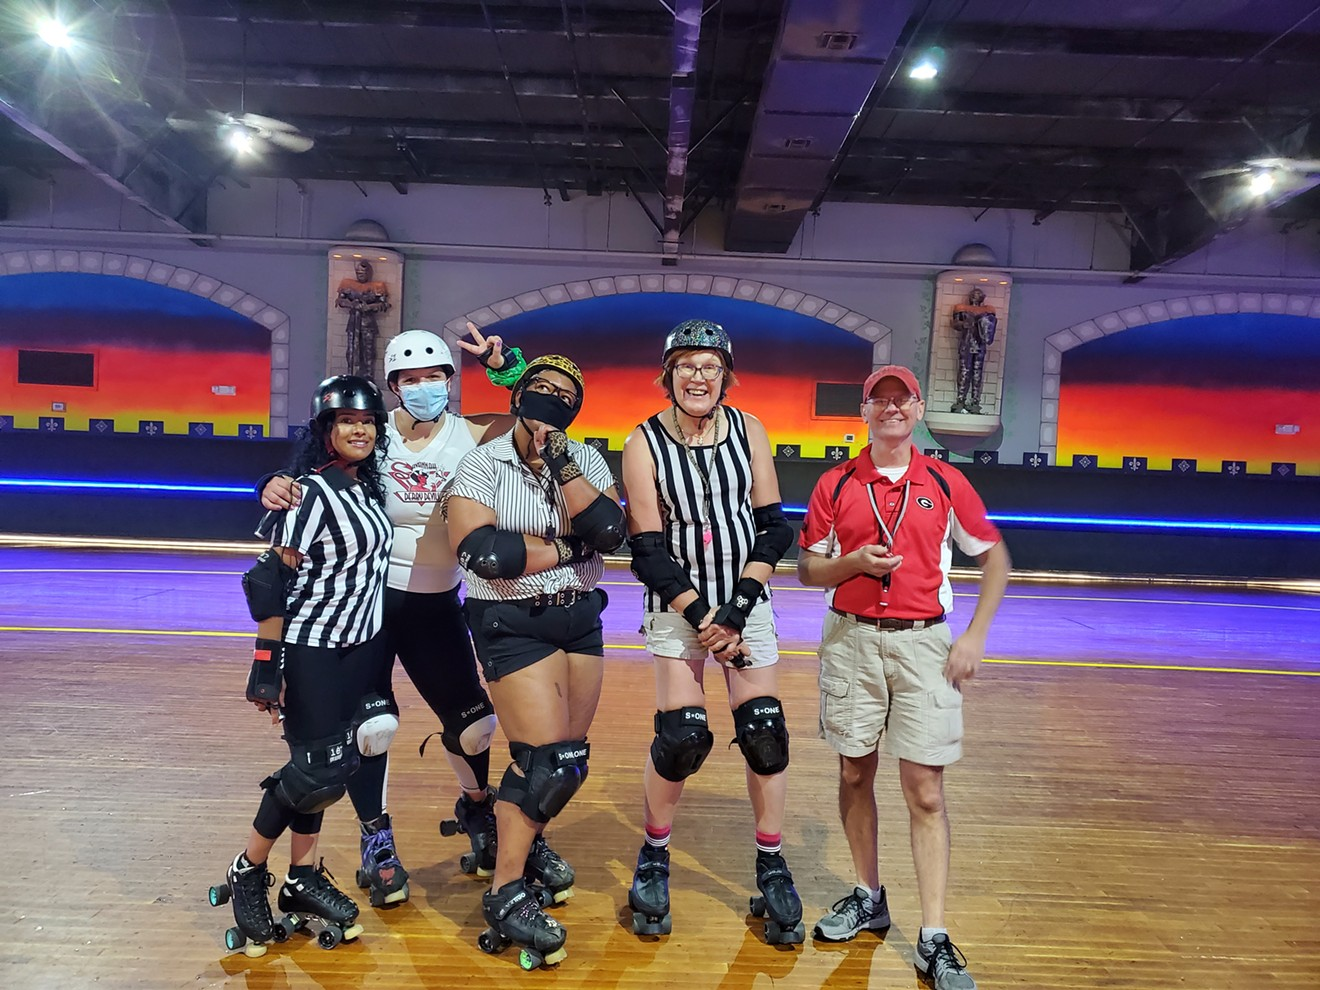 Rollerderby referees and coaches gather in the rink as they prepare for the upcoming season. Open enrollment for the Jr. Derbytaunts runs through the end of August.